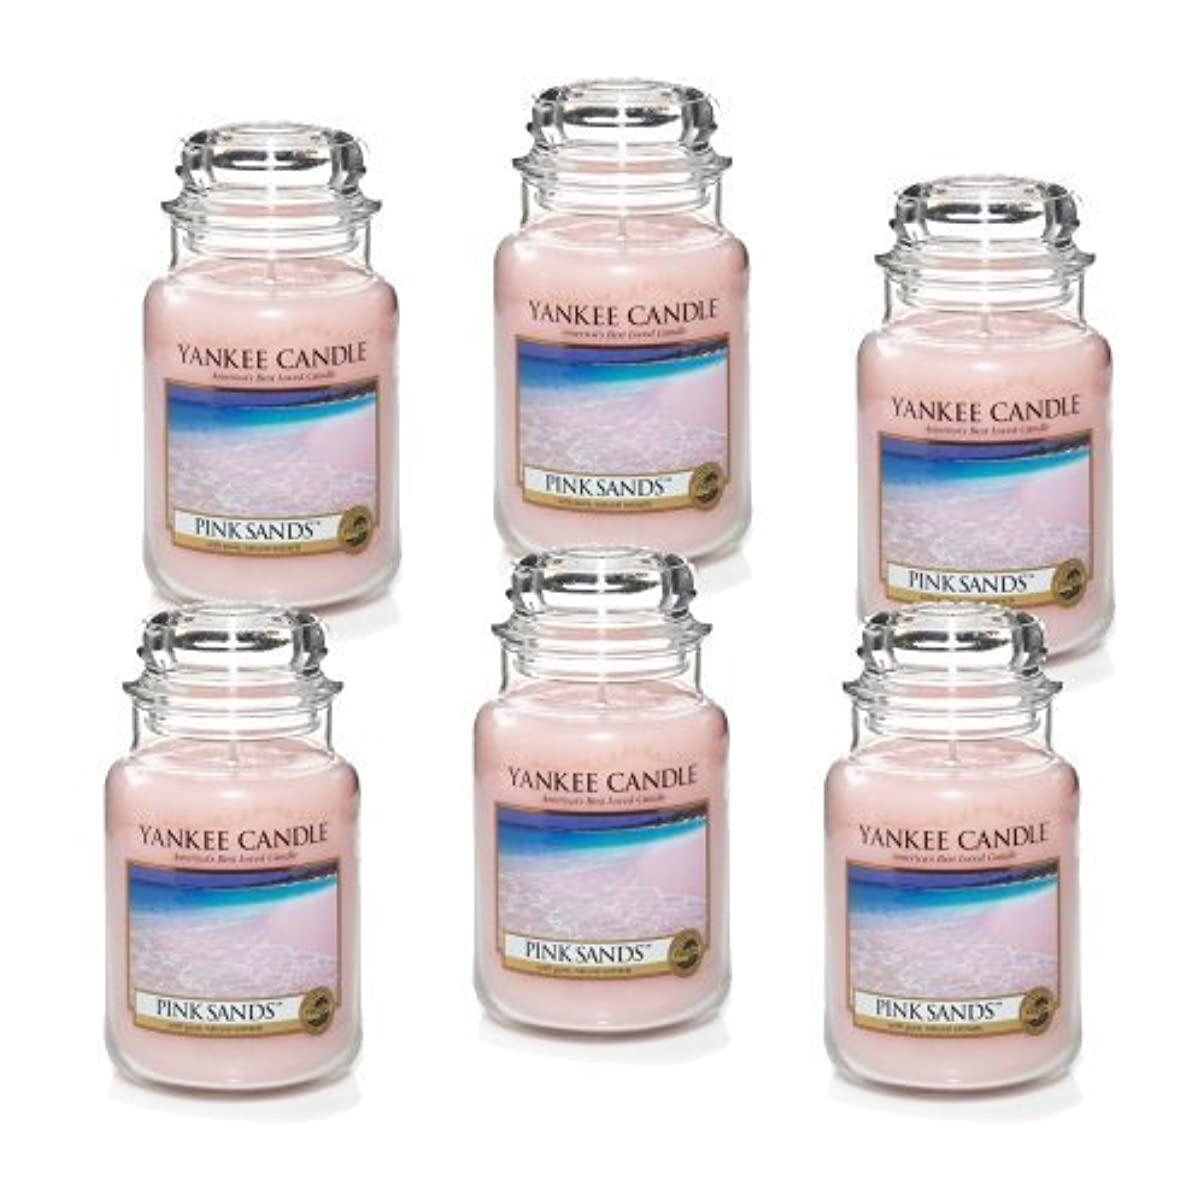 シプリースポーツをするスツールYankee Candle Company 22-Ounce Pink Sands Jar Candle, Large, Set of 6 by Amazon source [並行輸入品]